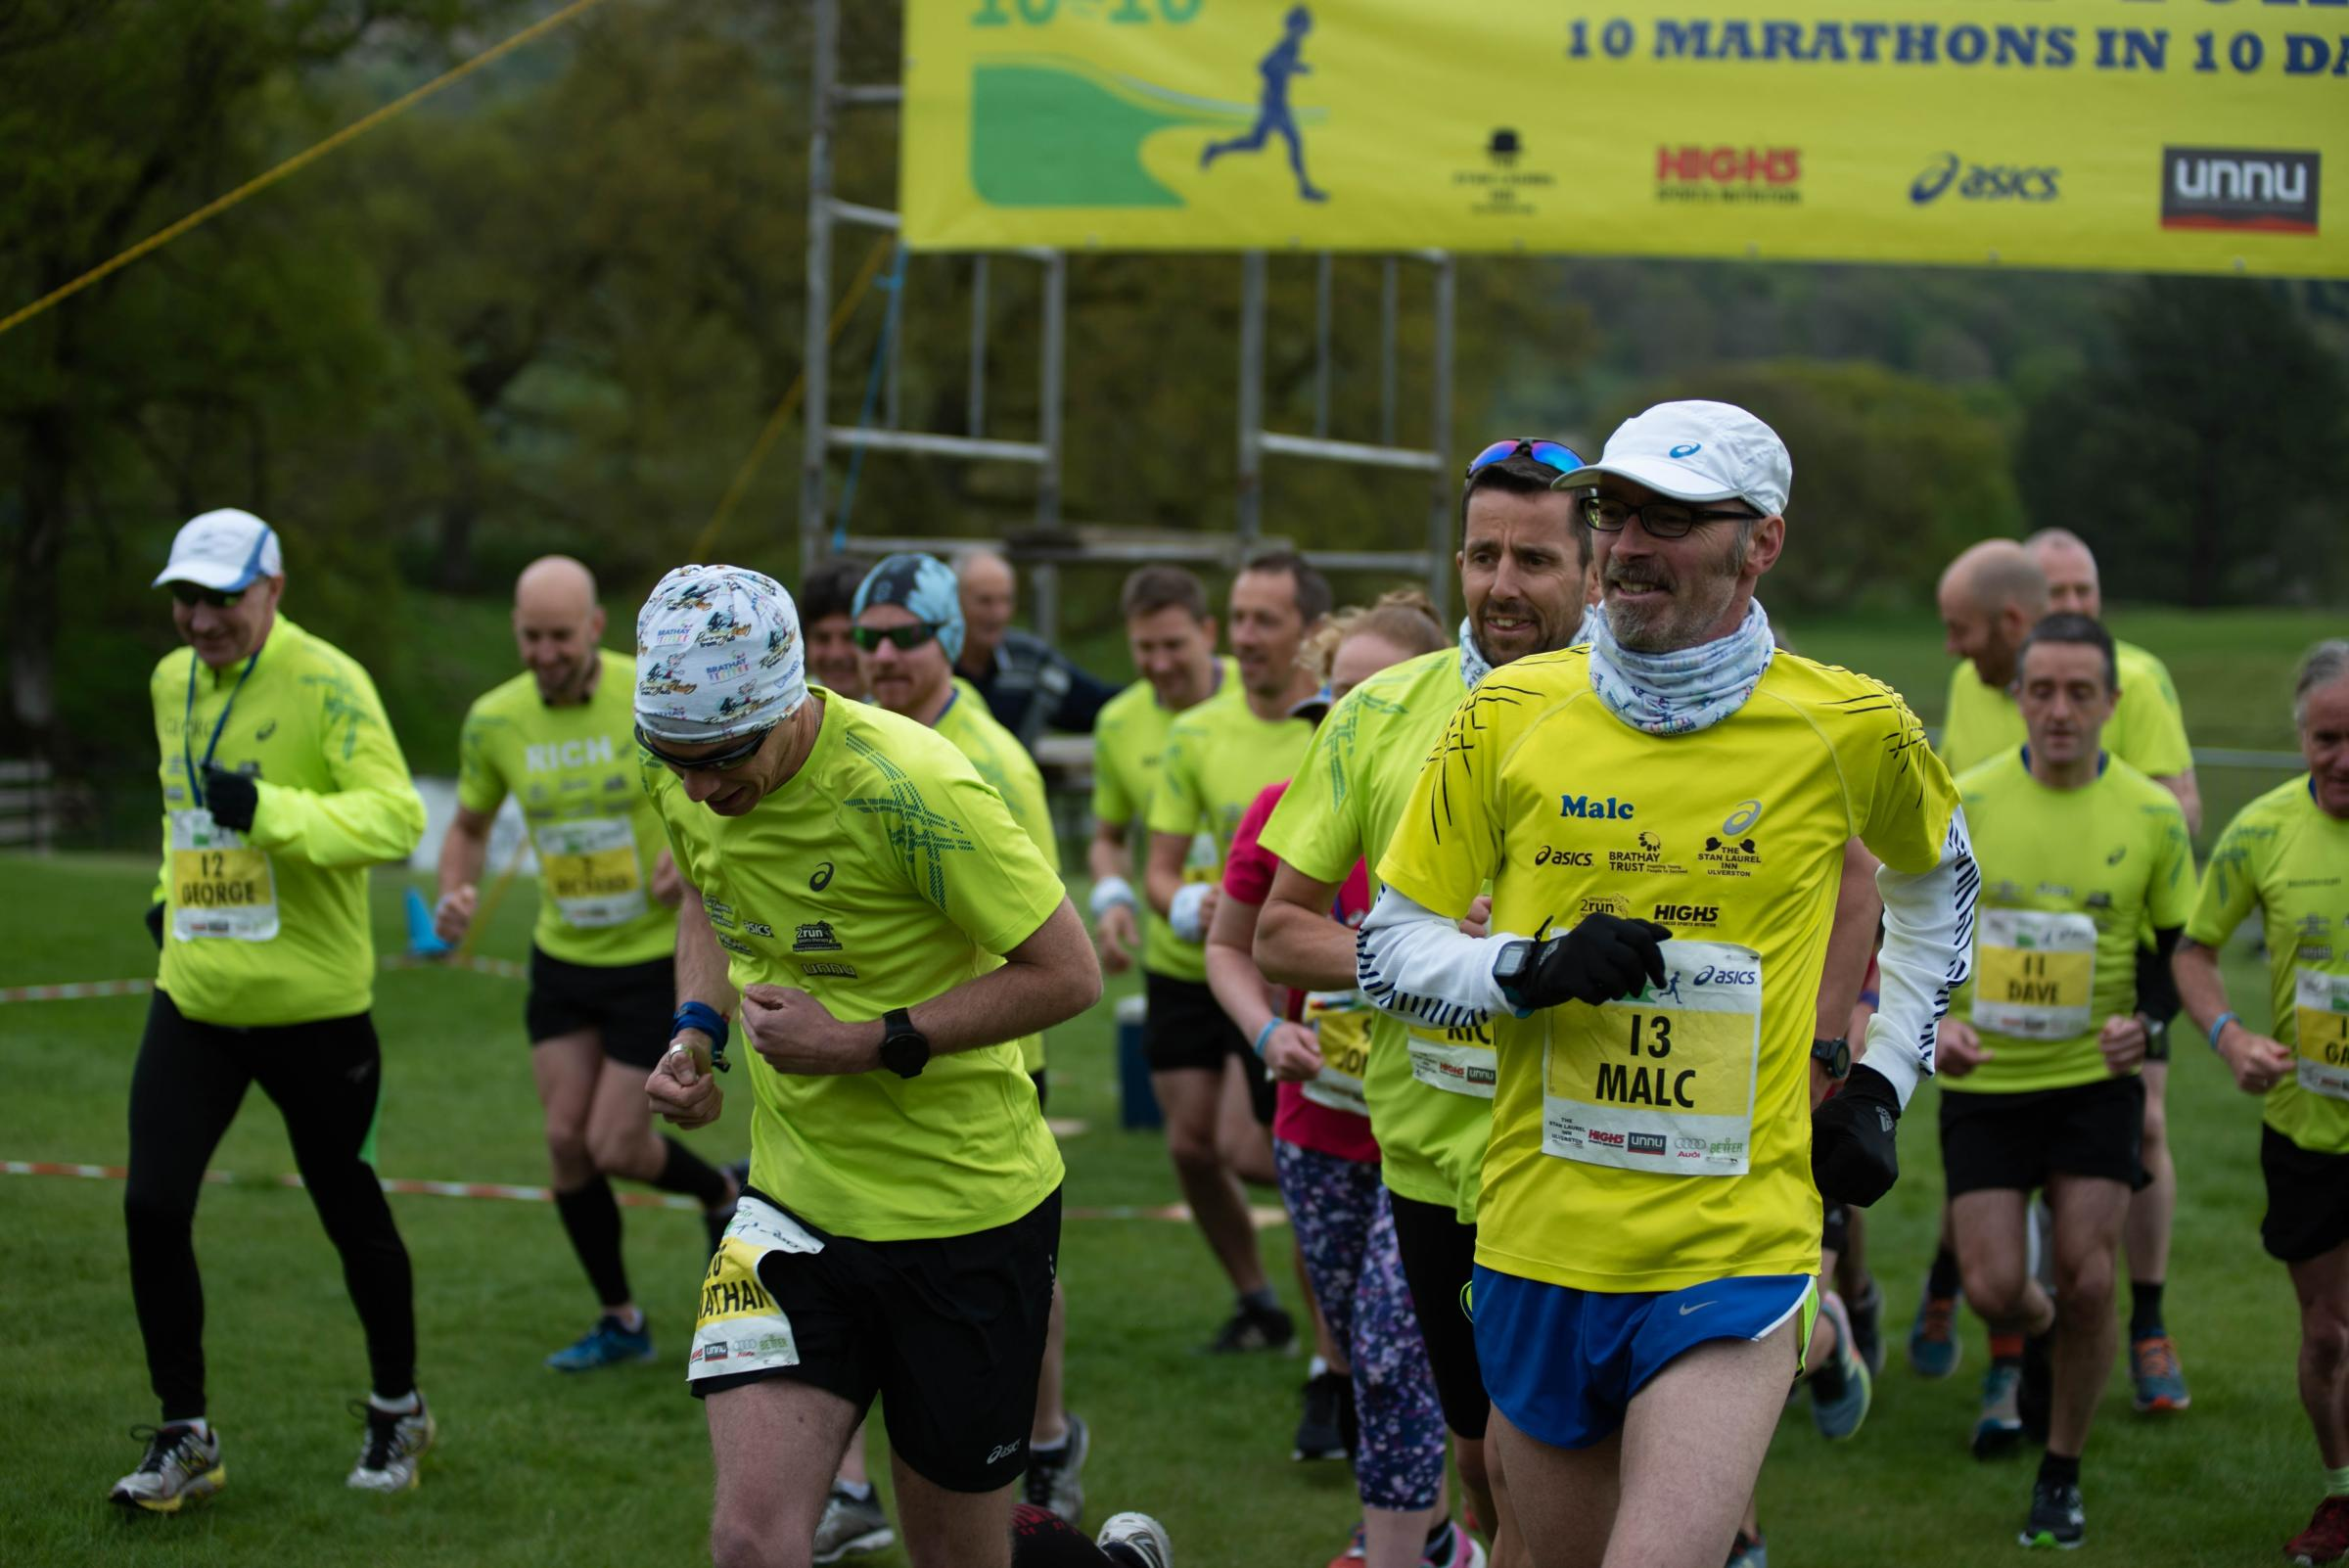 Brathay 10in10 runners set off on their gruelling marathon challenge last Friday